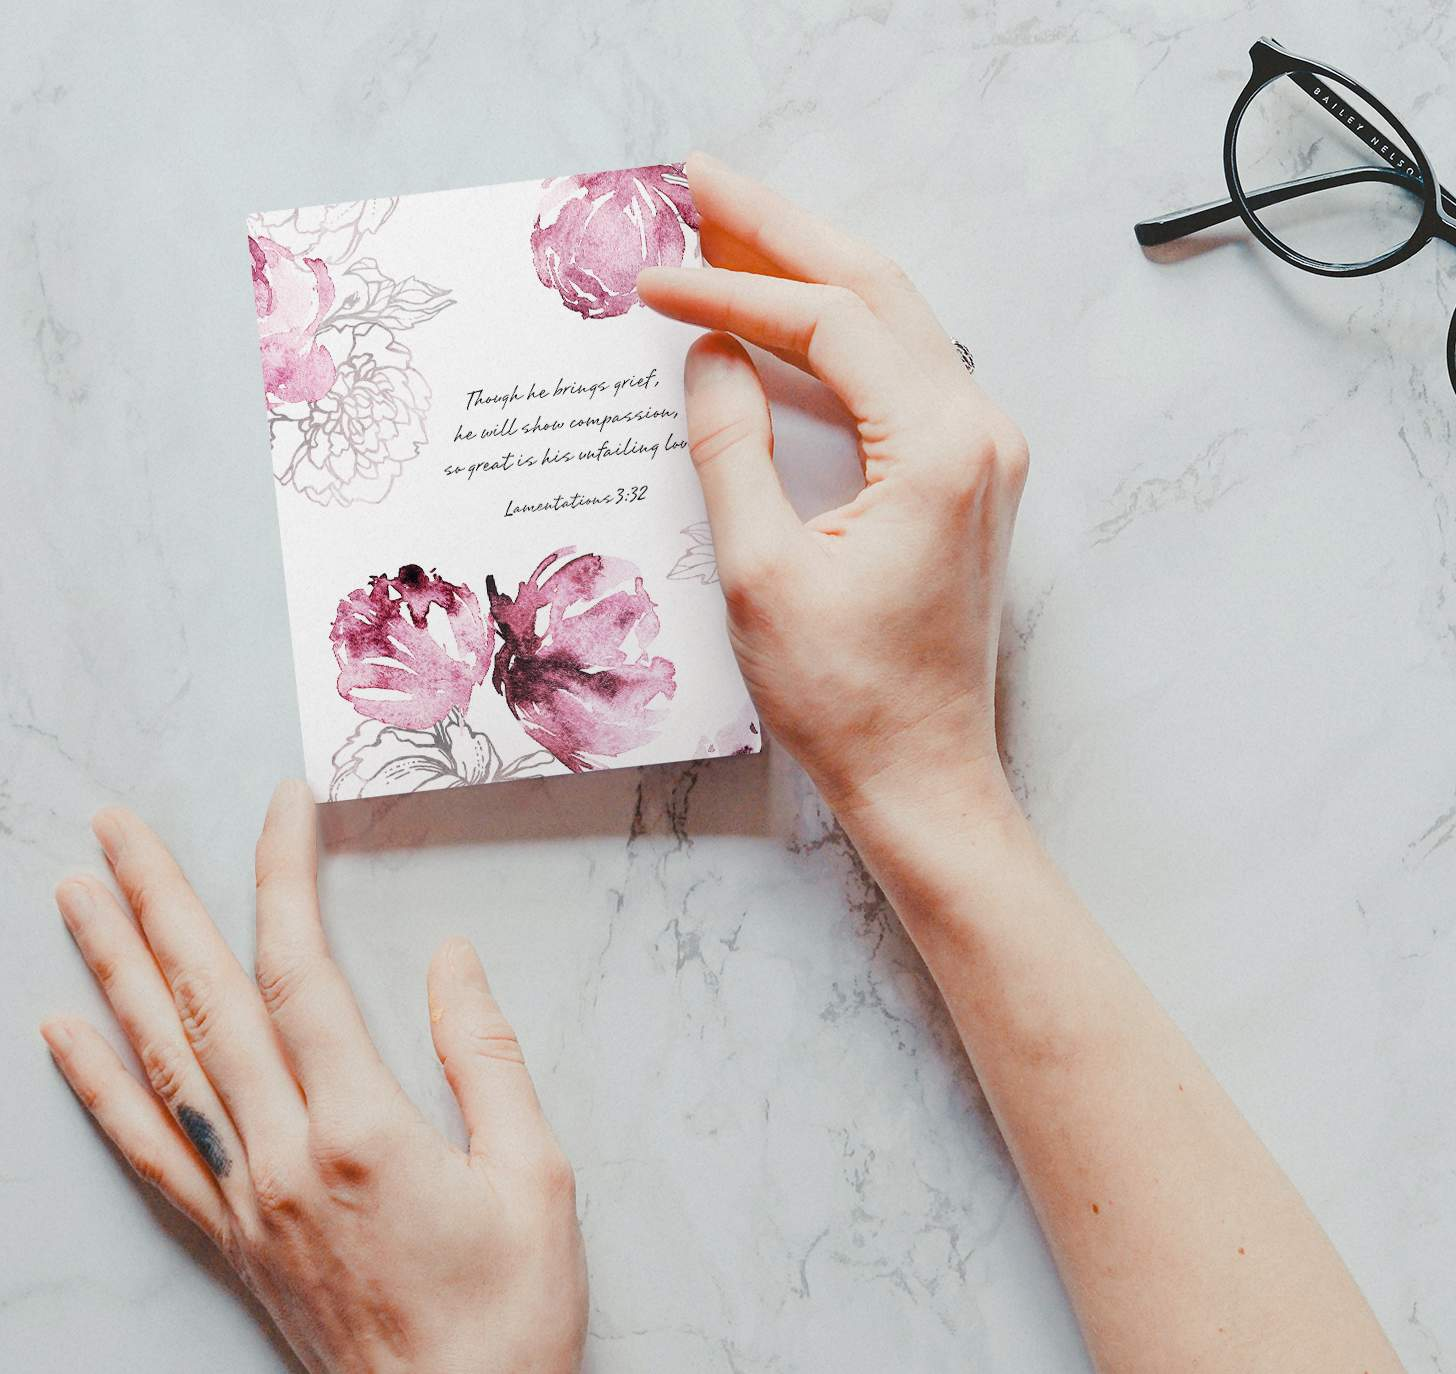 Hands holding Pink floral themed sympathy design on marble background